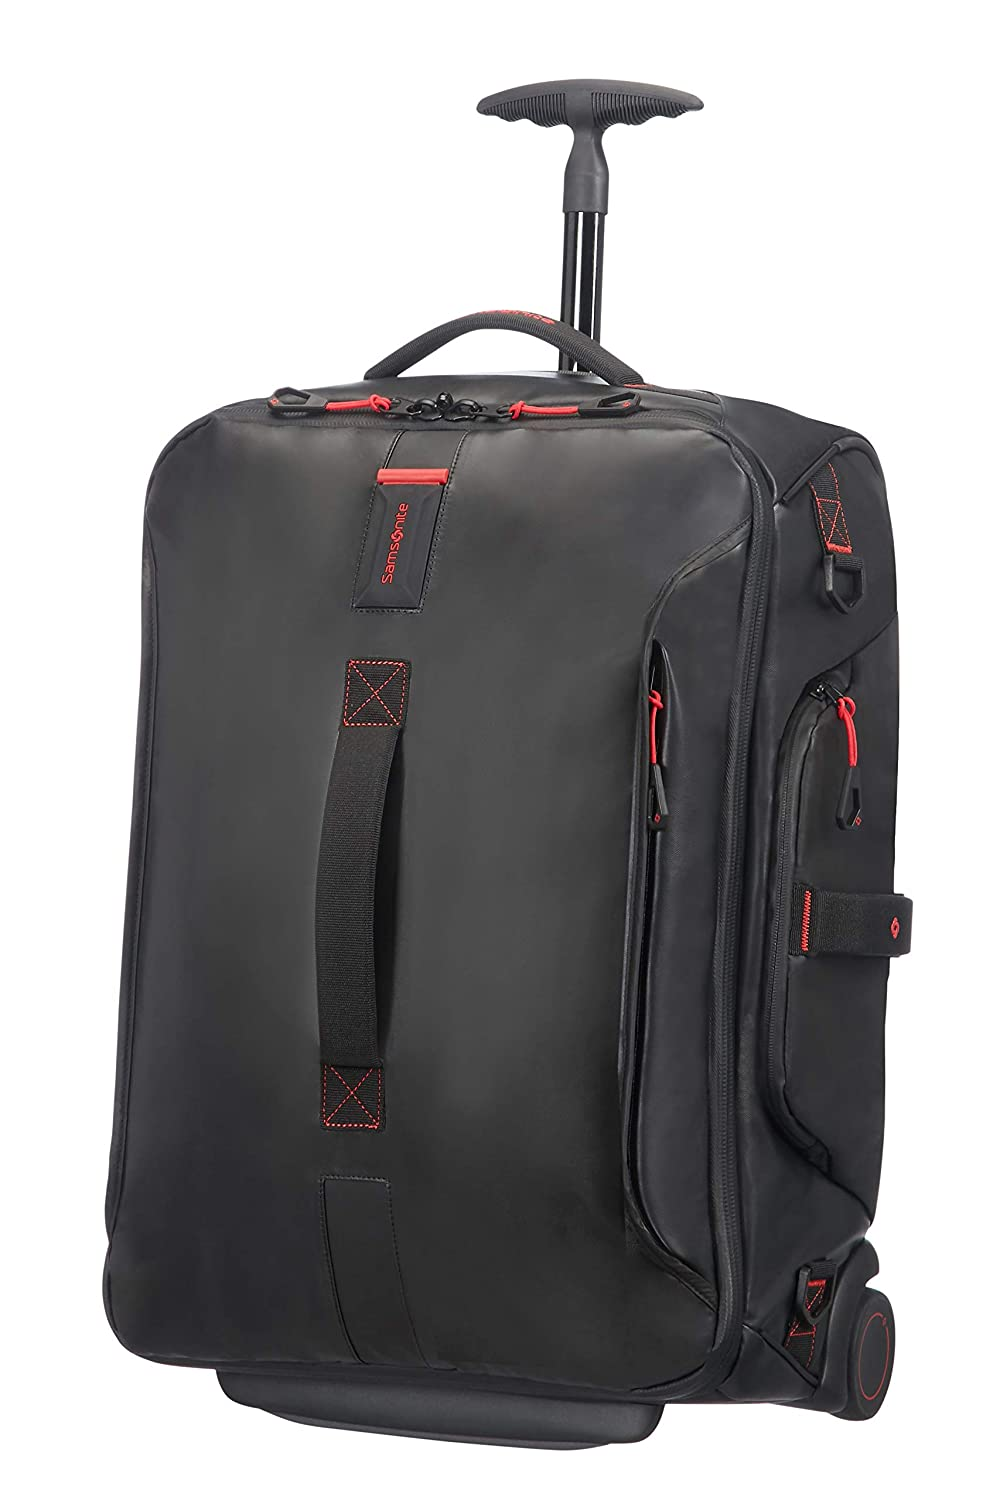 Maleta Samsonite Paradiver Light 55